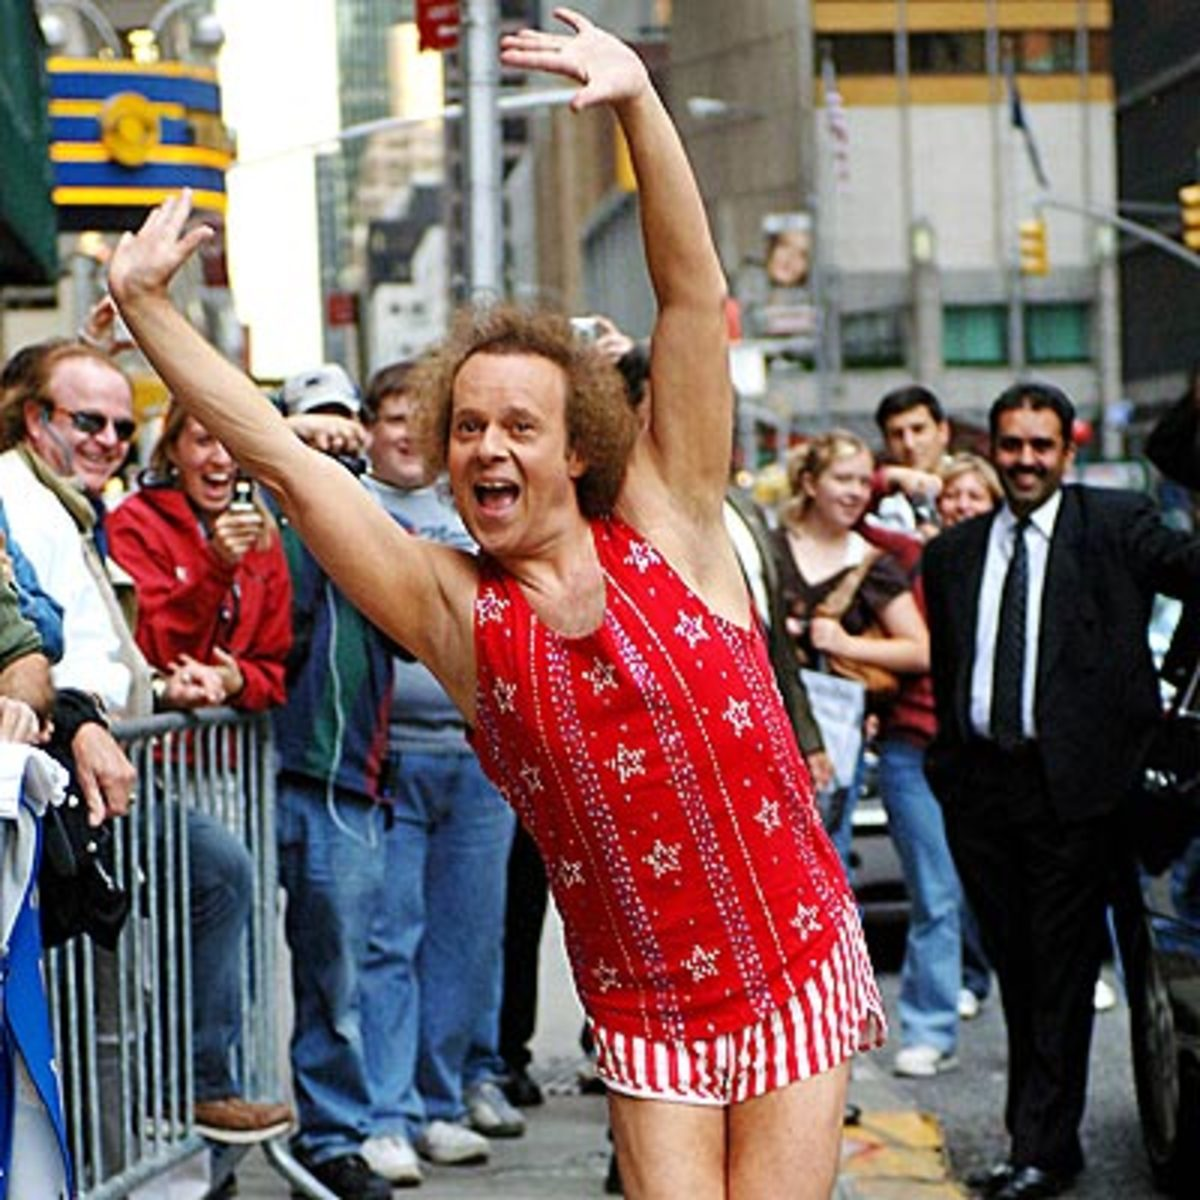 Richard Simmons Exercise DVD and Weight Loss Program